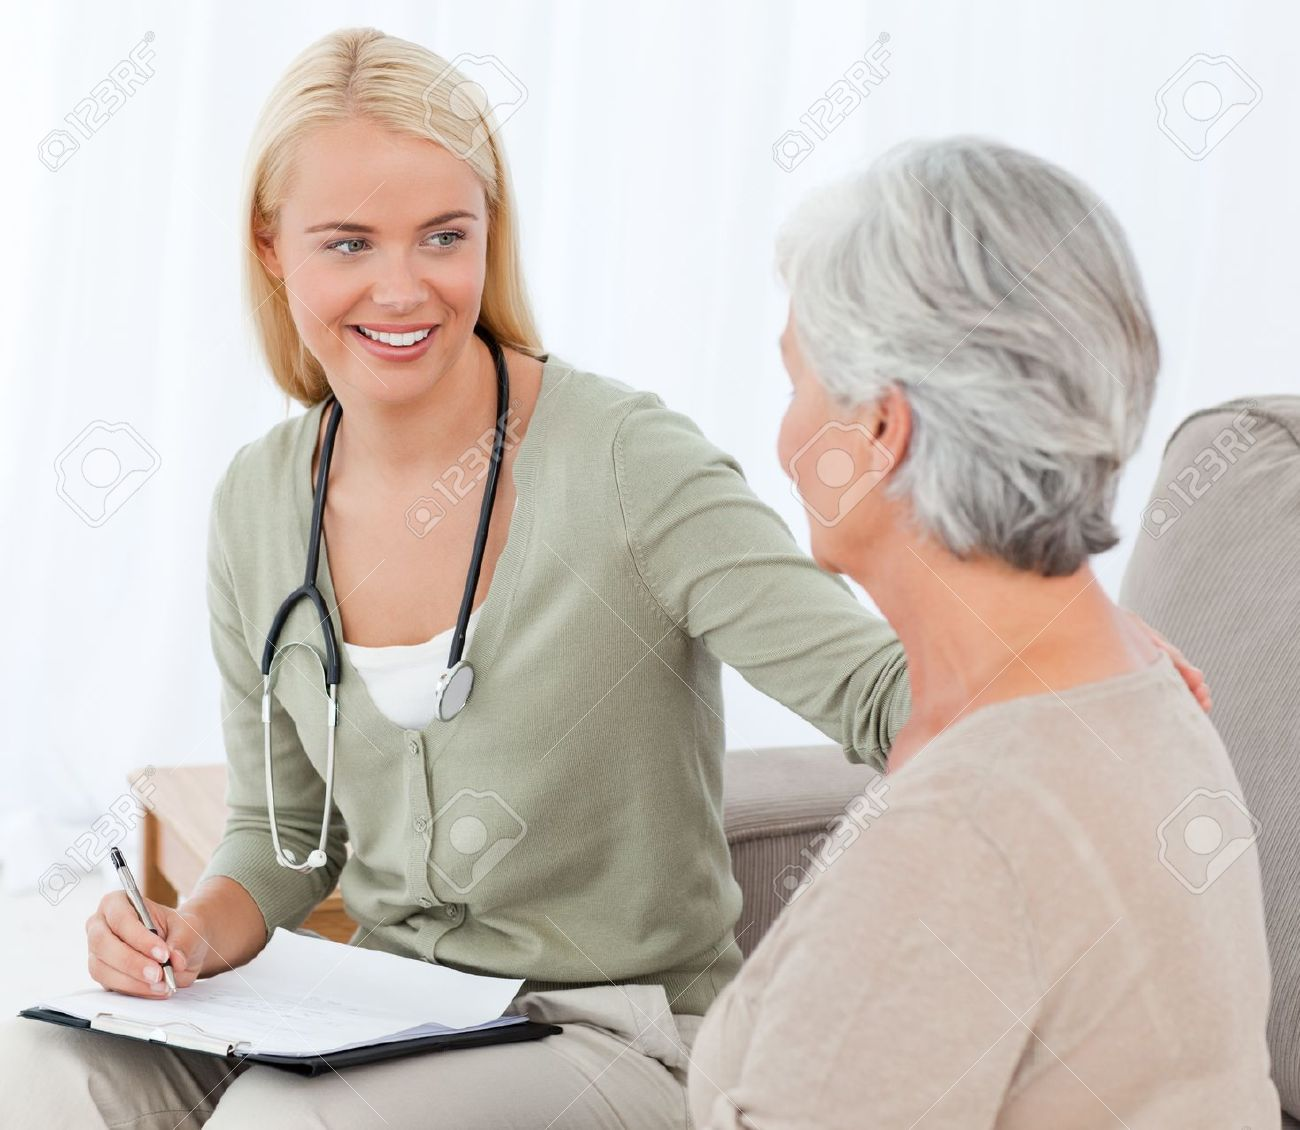 http://previews.123rf.com/images/wavebreakmediamicro/wavebreakmediamicro1108/wavebreakmediamicro110840674/10215339-Doctor-talking-with-her-patient-Stock-Photo-nurse-patient-home.jpg